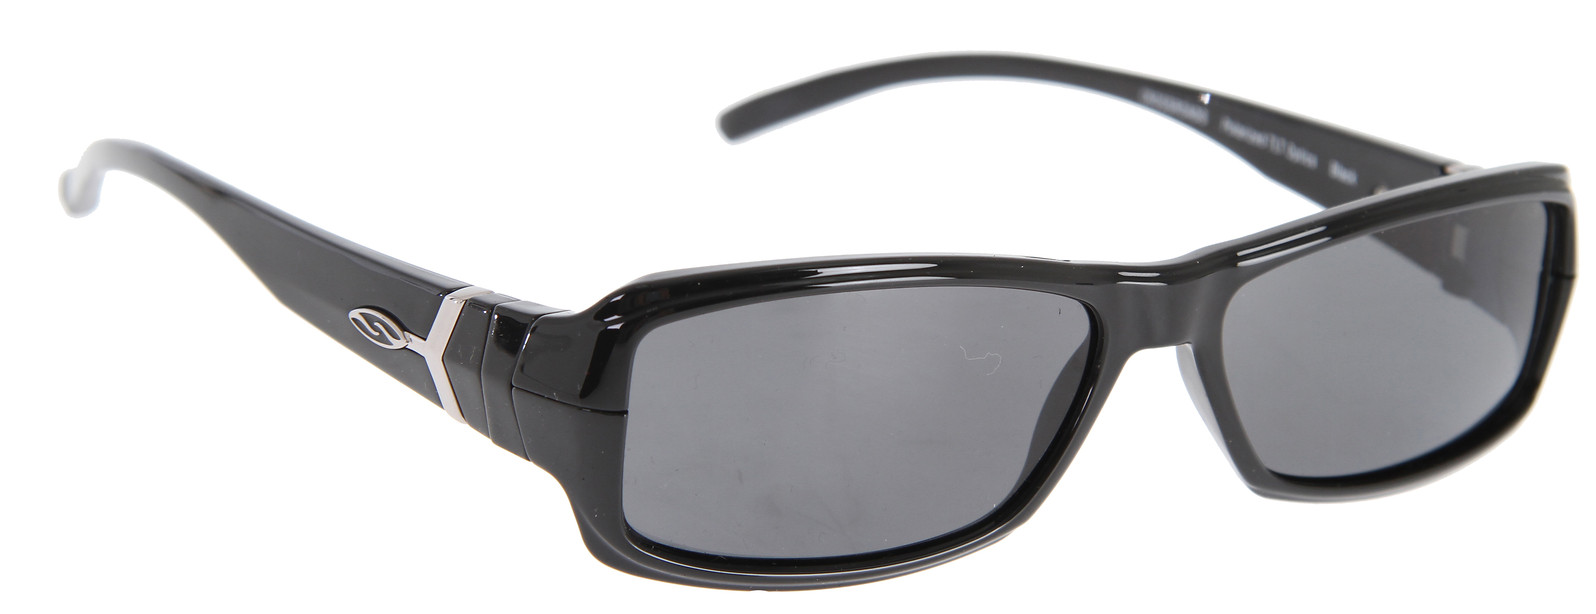 Smith Crossroad Interlock Sunglasses Black/Grey Polarized Lens  smith-crossroad-interlock-sngls-gry-blk-plzd-09.jpg